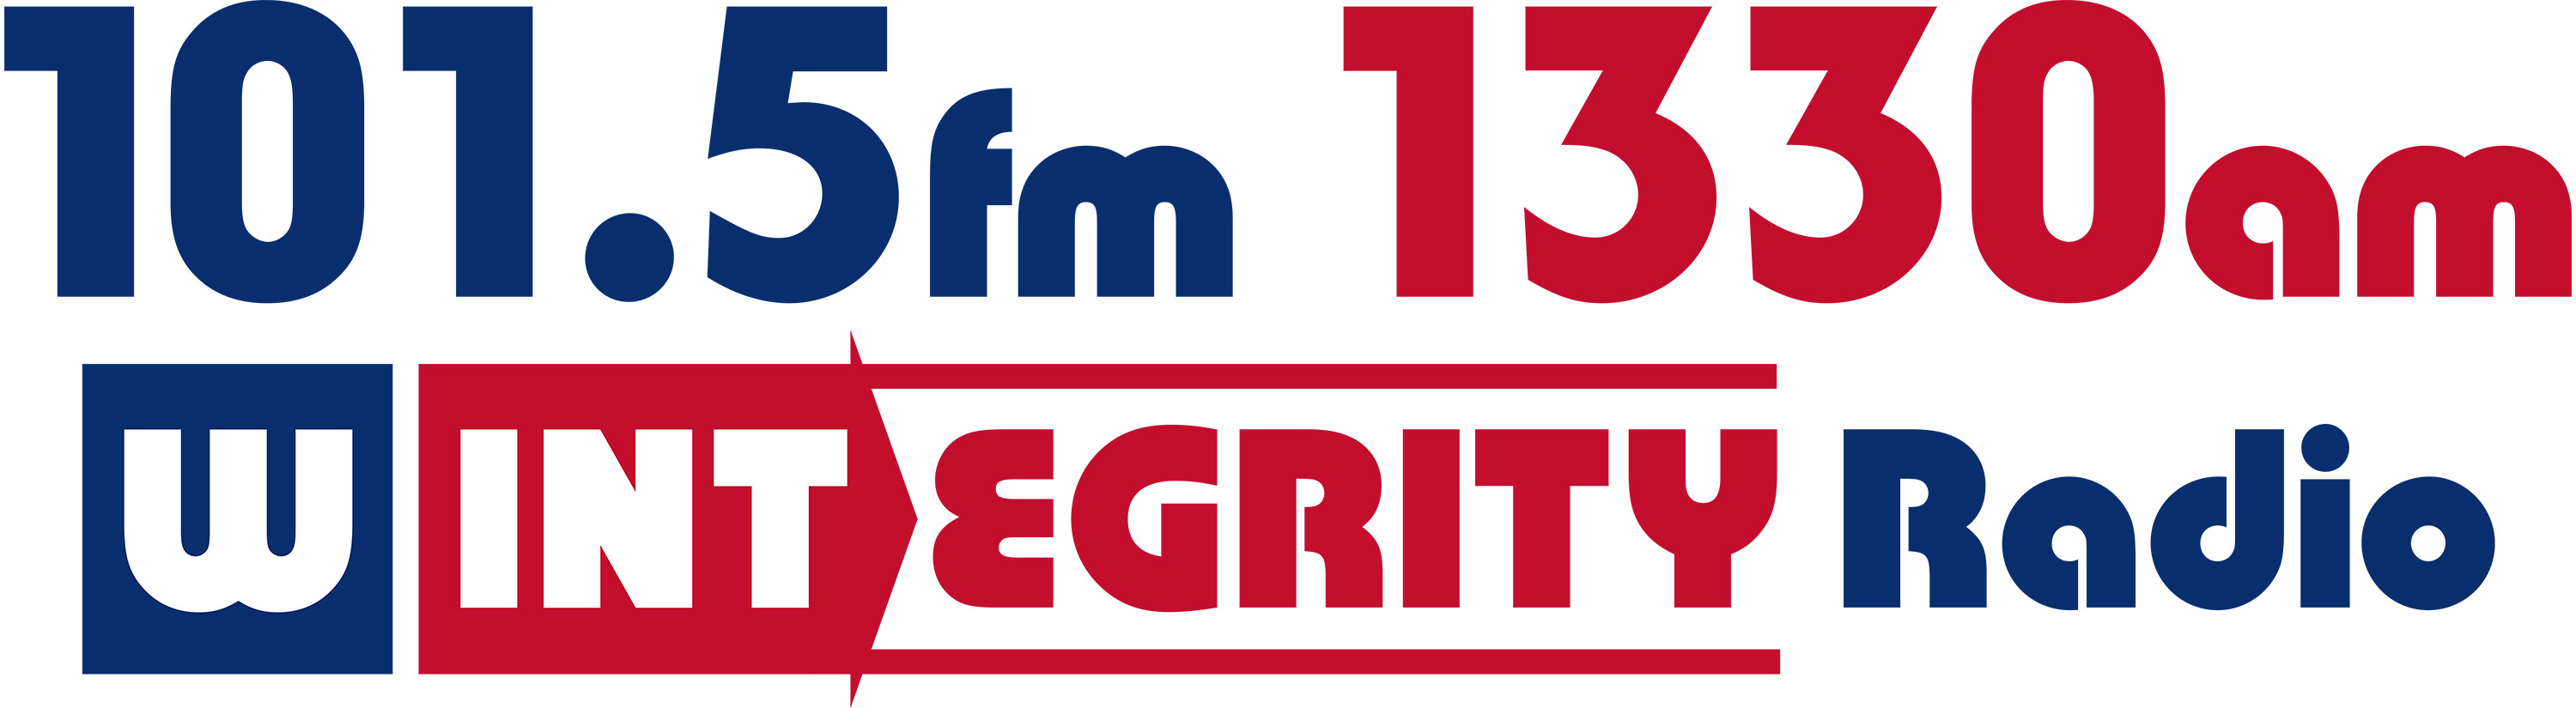 2a. WINT Integrity Radio 101.5FM / 1330AM (Mission)